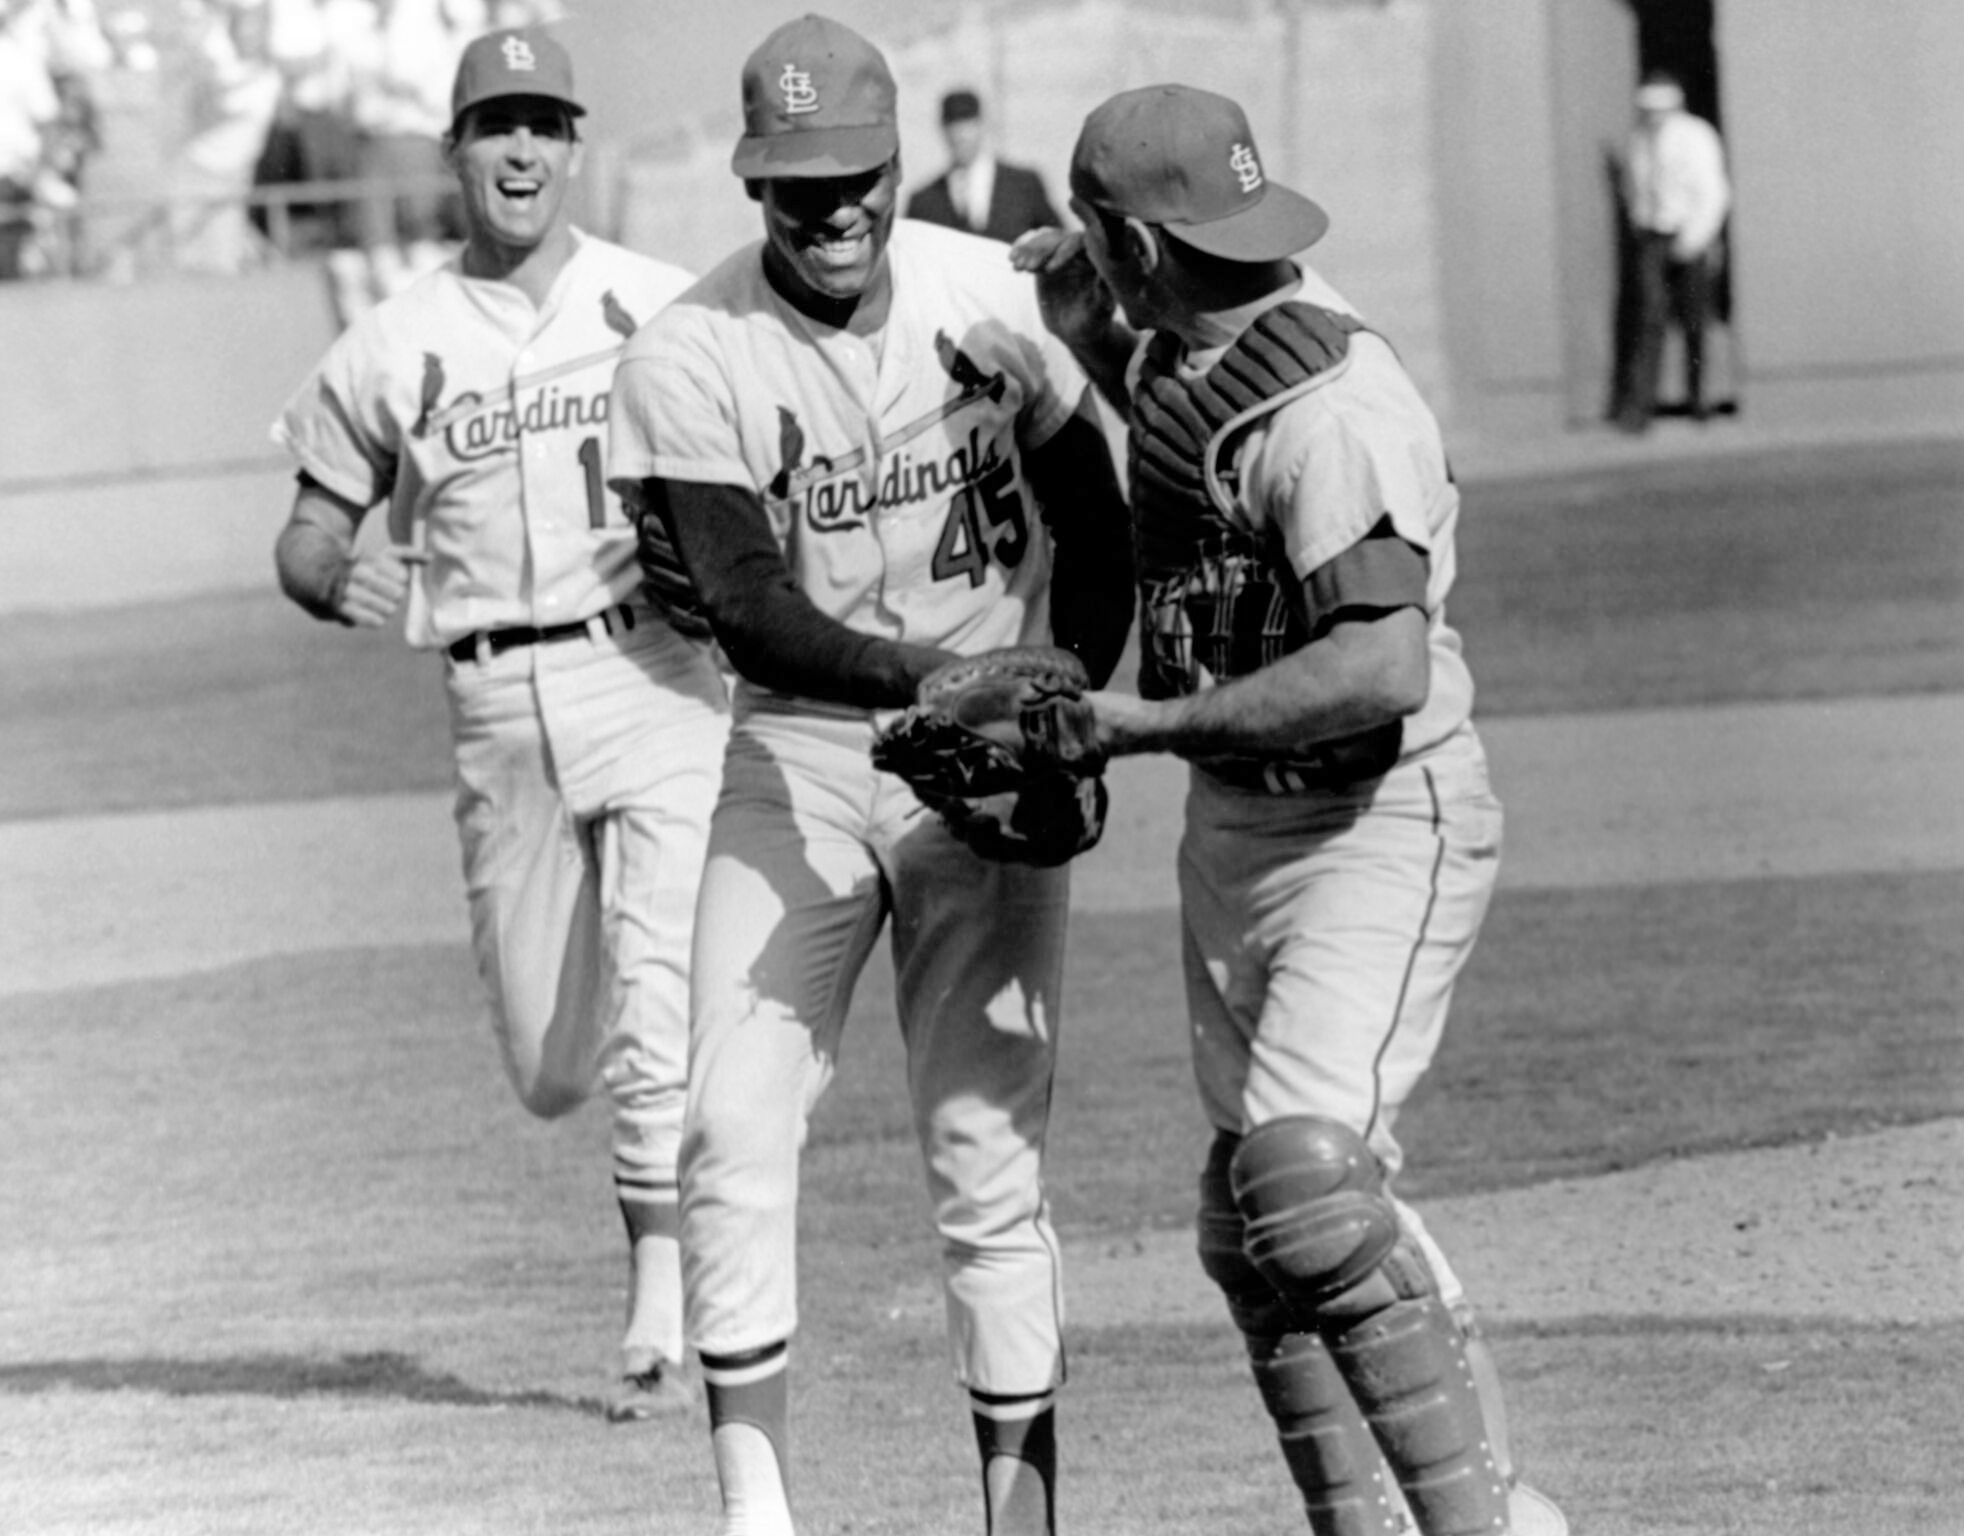 90b8e2c225b St. Louis Cardinals pitcher Bob Gibson (center) is congratulated by catcher  Tim McCarver (right) during the 1968 World Series against the Detroit  Tigers.